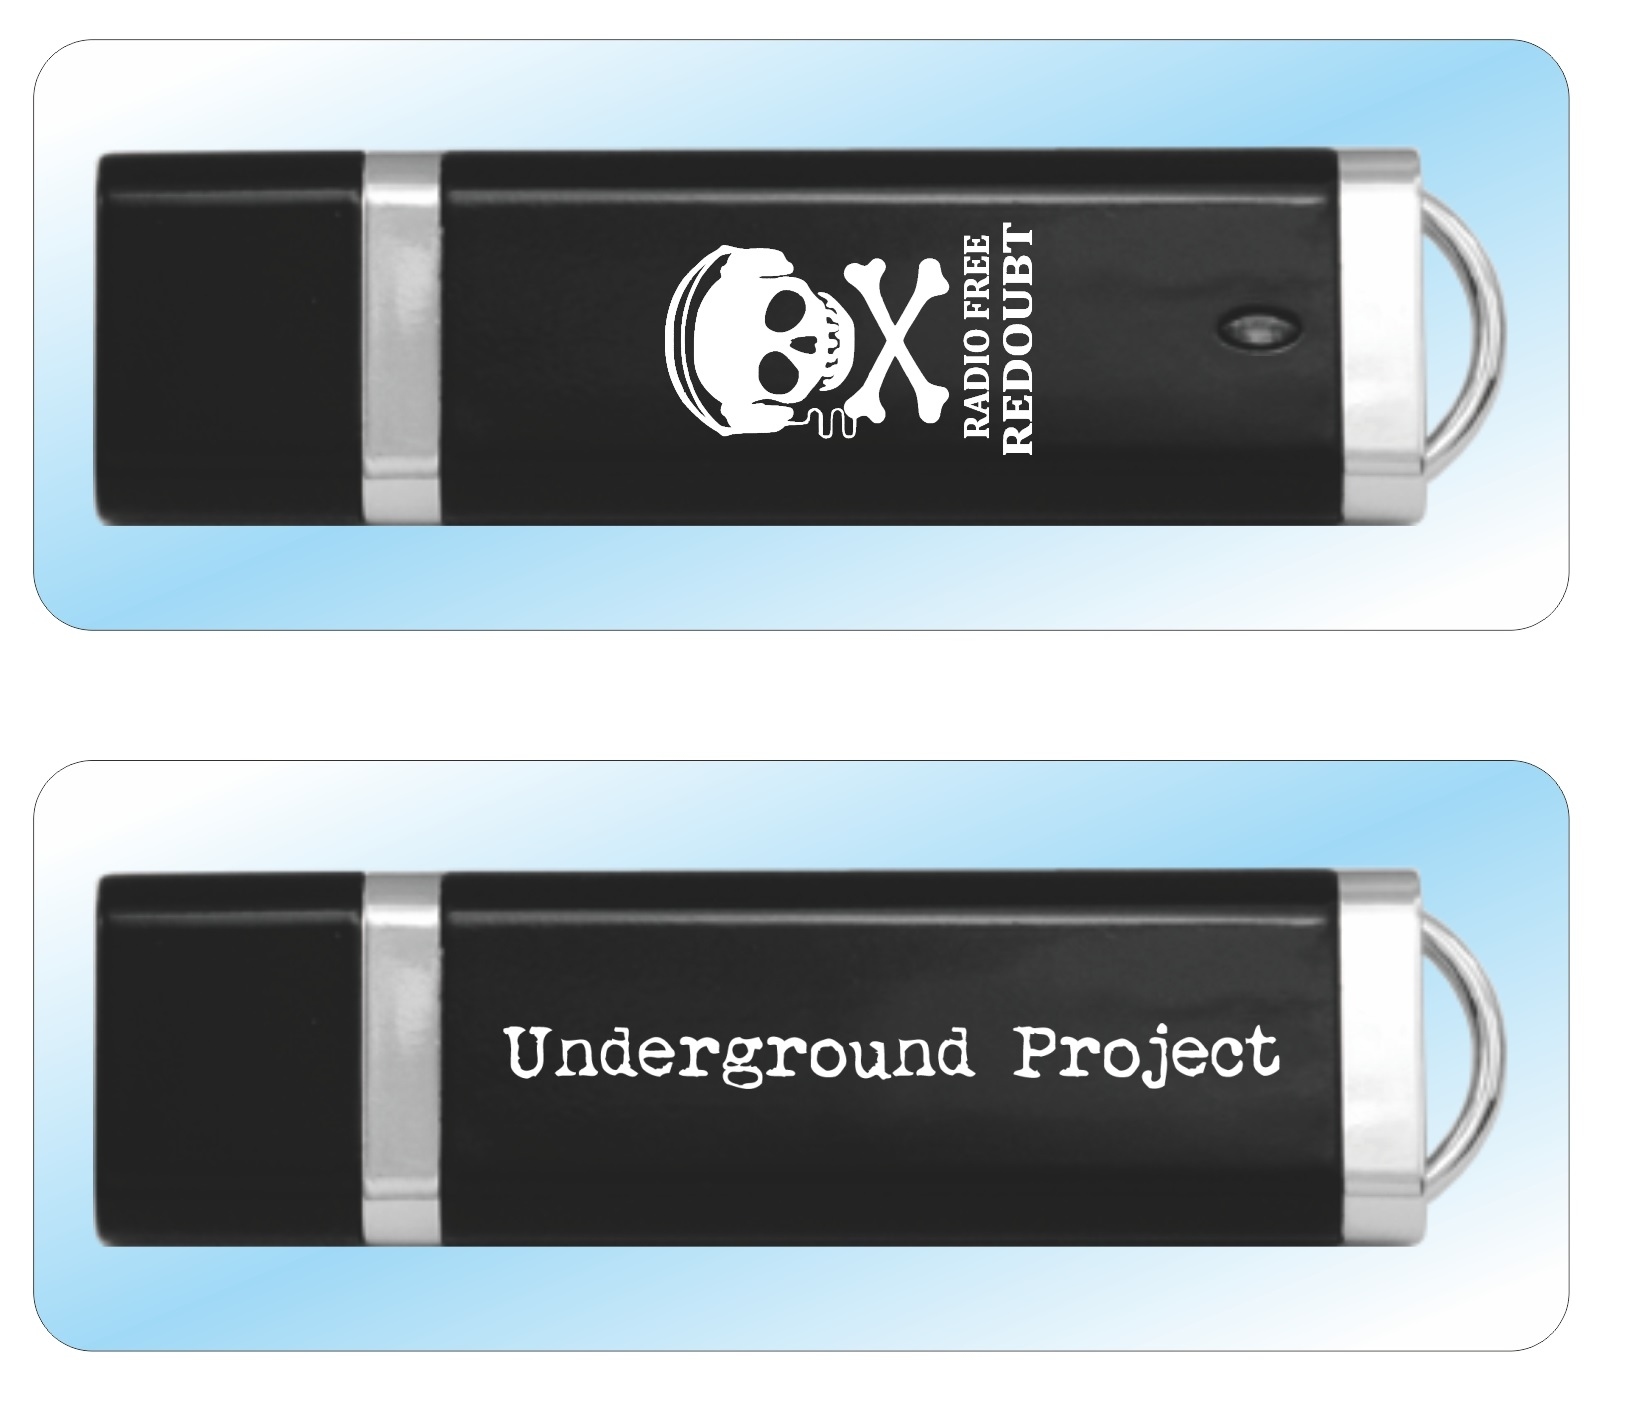 Underground Project Thumb Drive